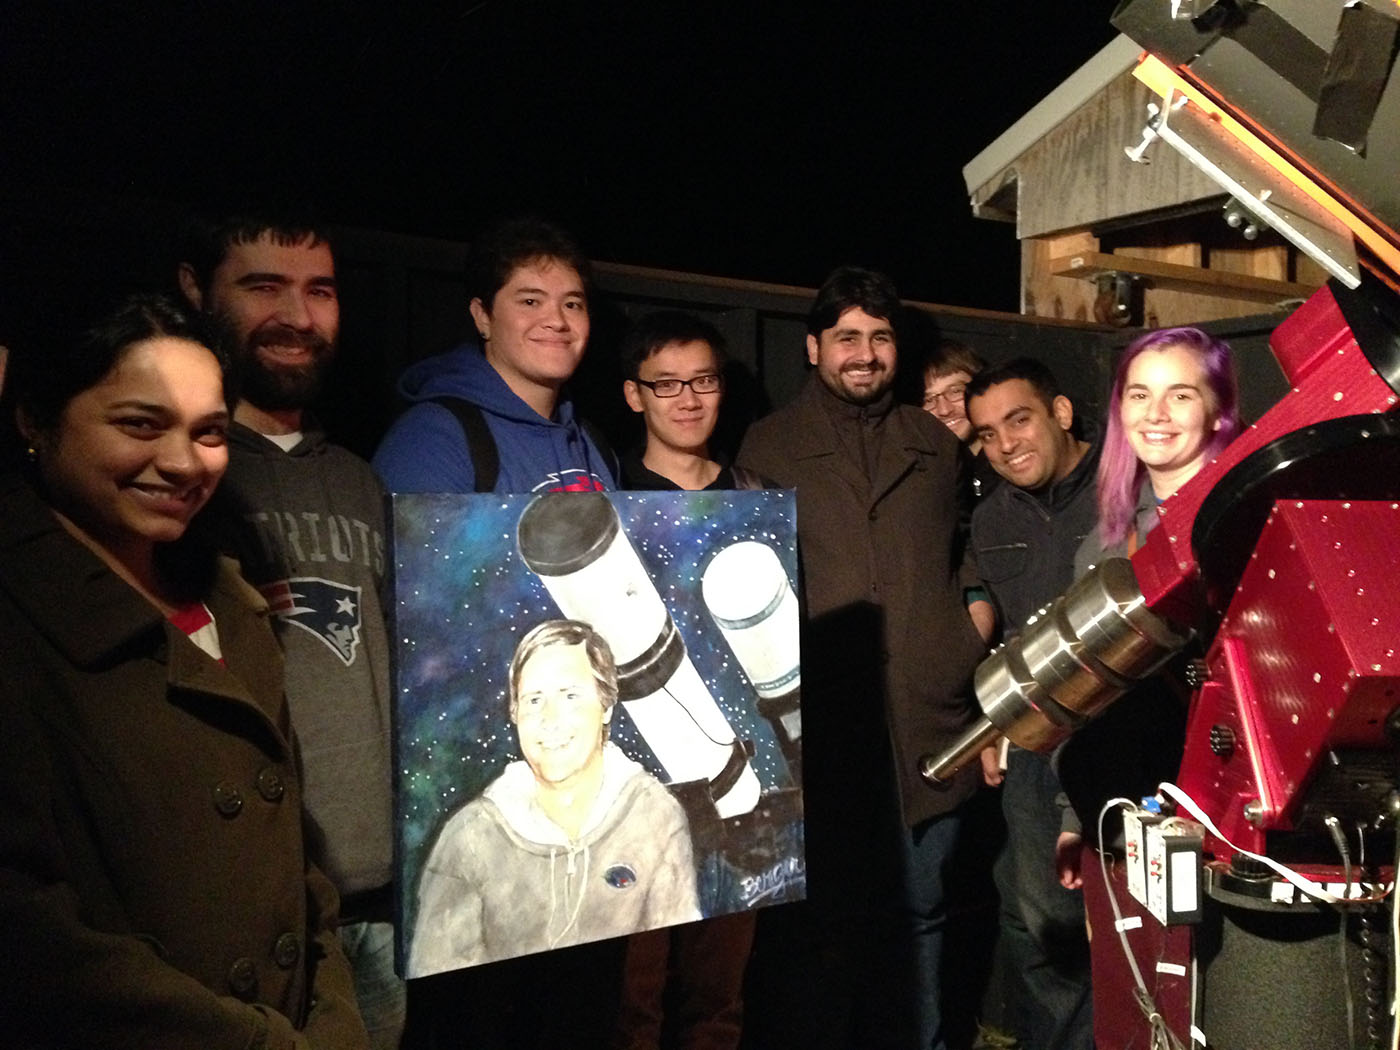 UMass Lowell students at the Schueller observatory (in its original site) holding a portrait of Richard Schueller (painted by a local artist and friend).